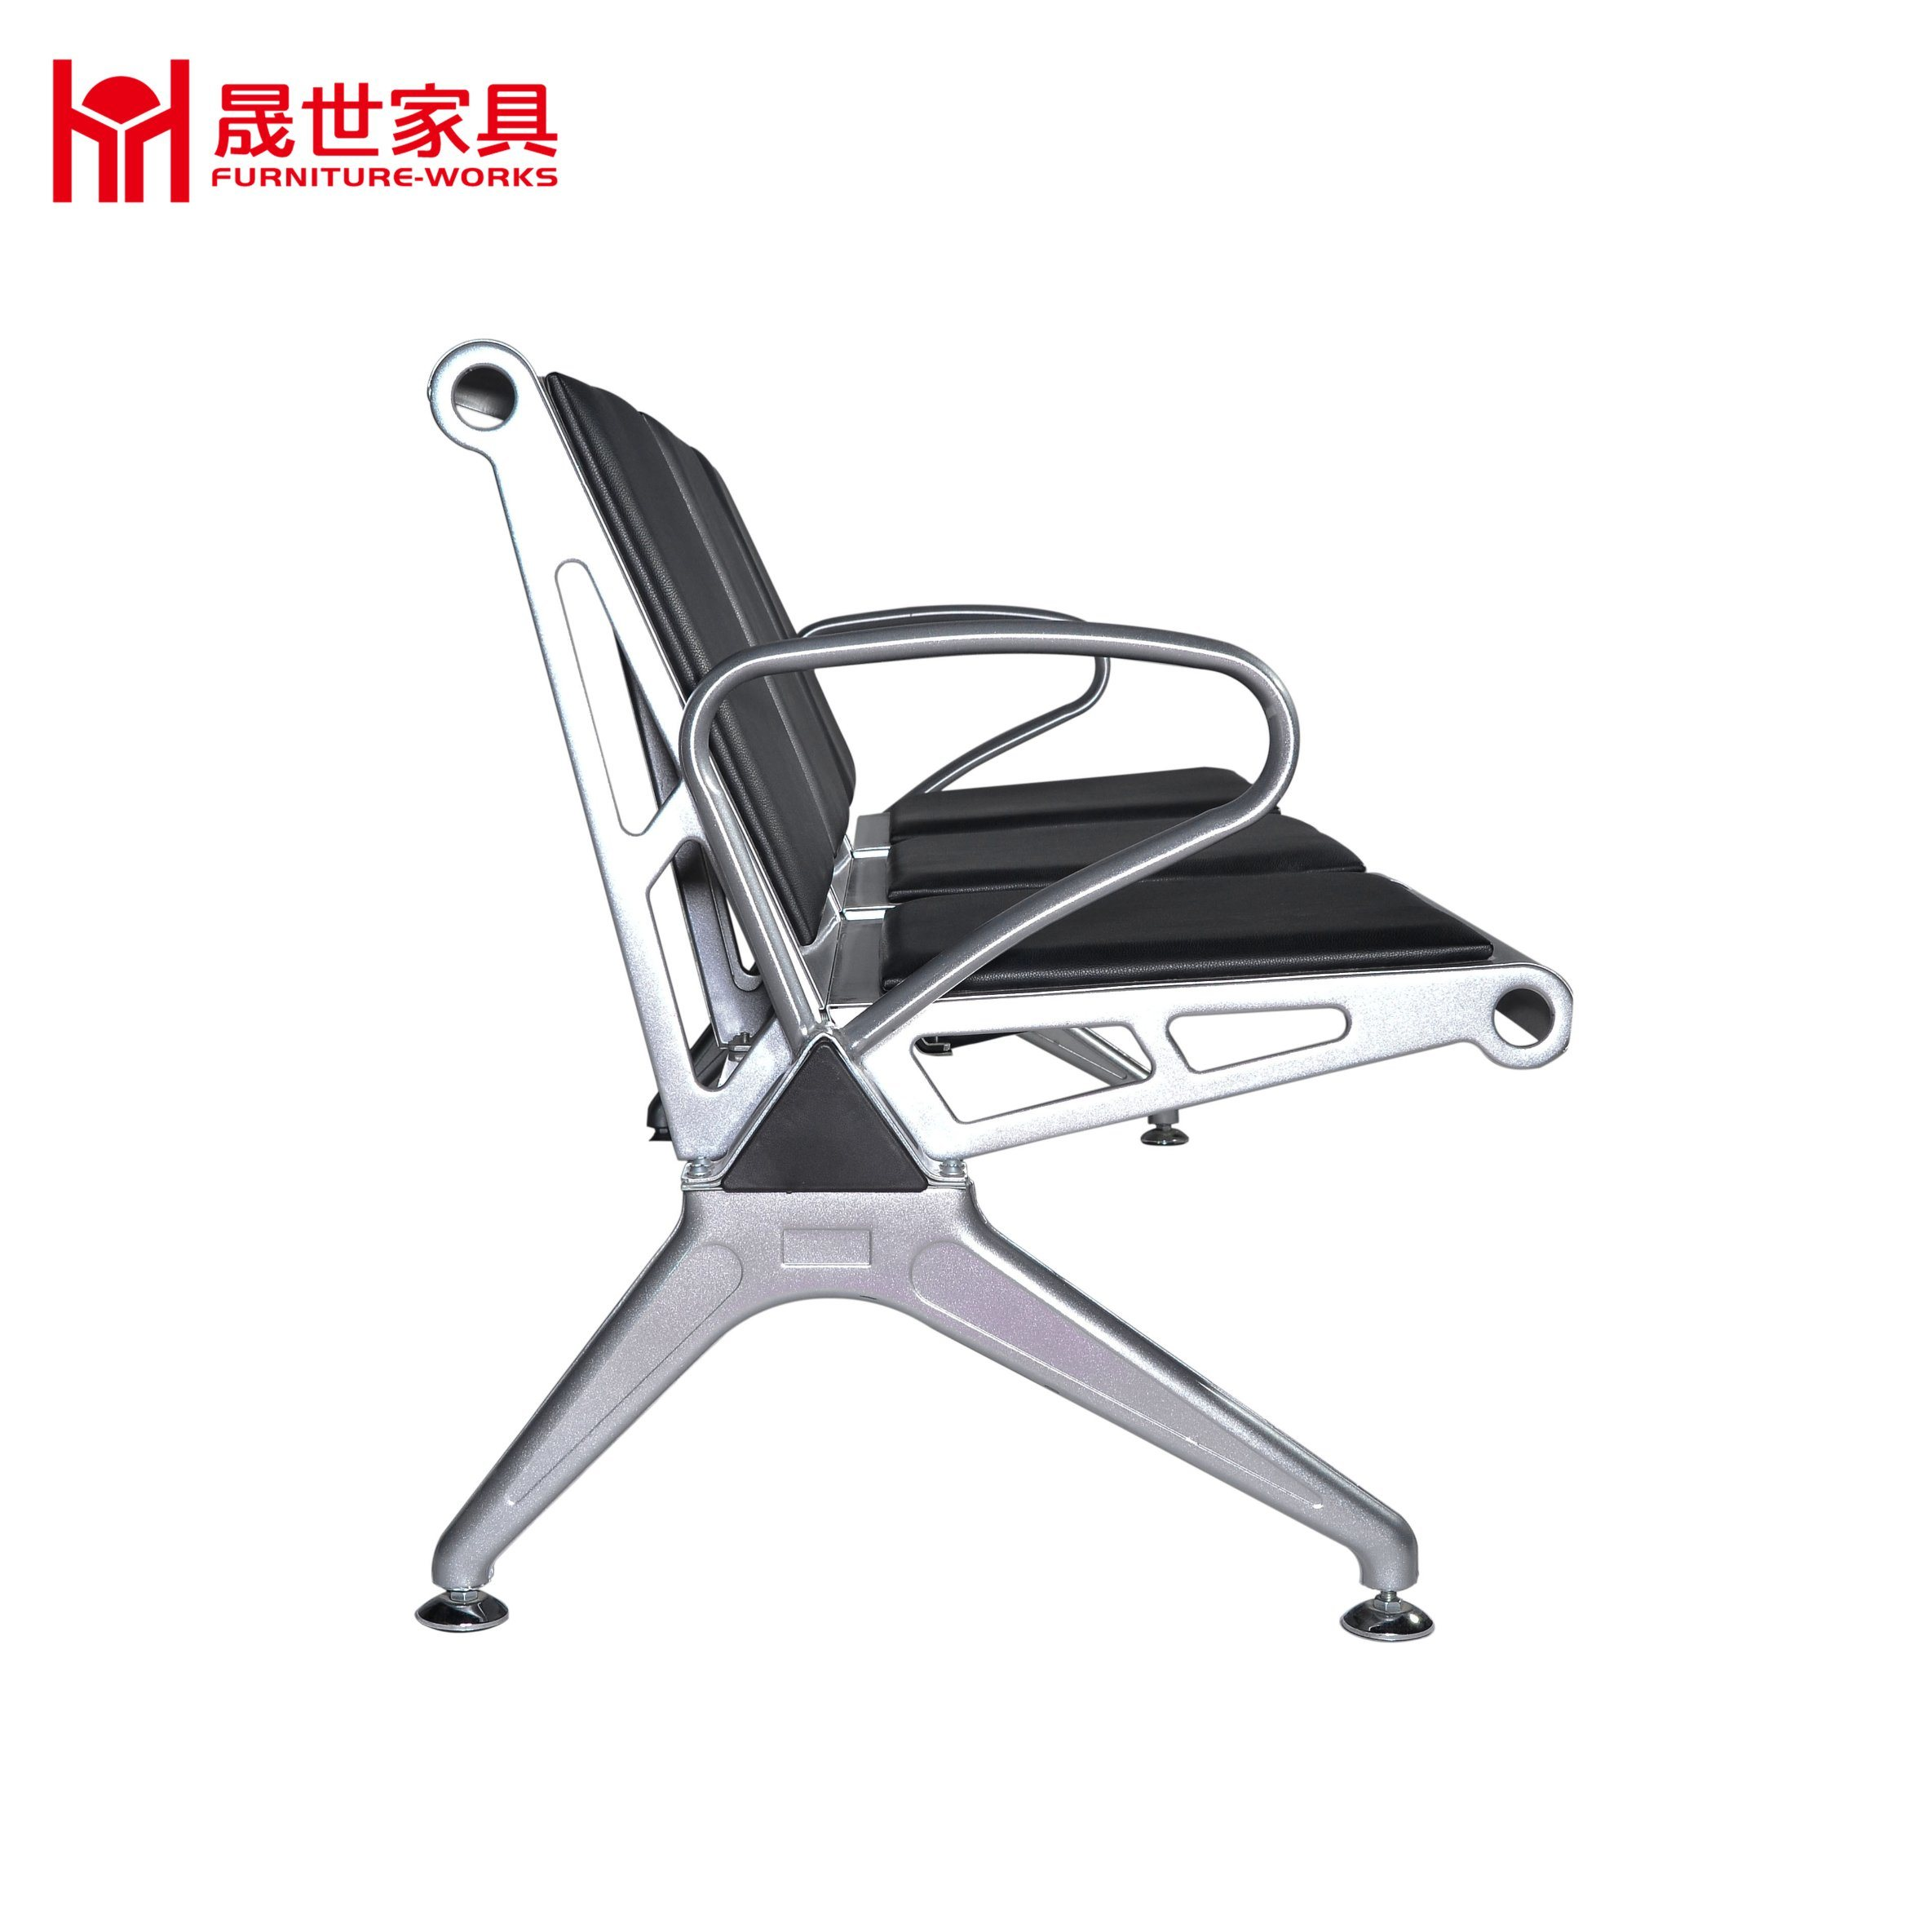 Cheap Price Hospital Armless Chair/Salon Reception Chairs 2.3.4.5-Seater Metal Steel Waiting Chair with Color PU Cushion